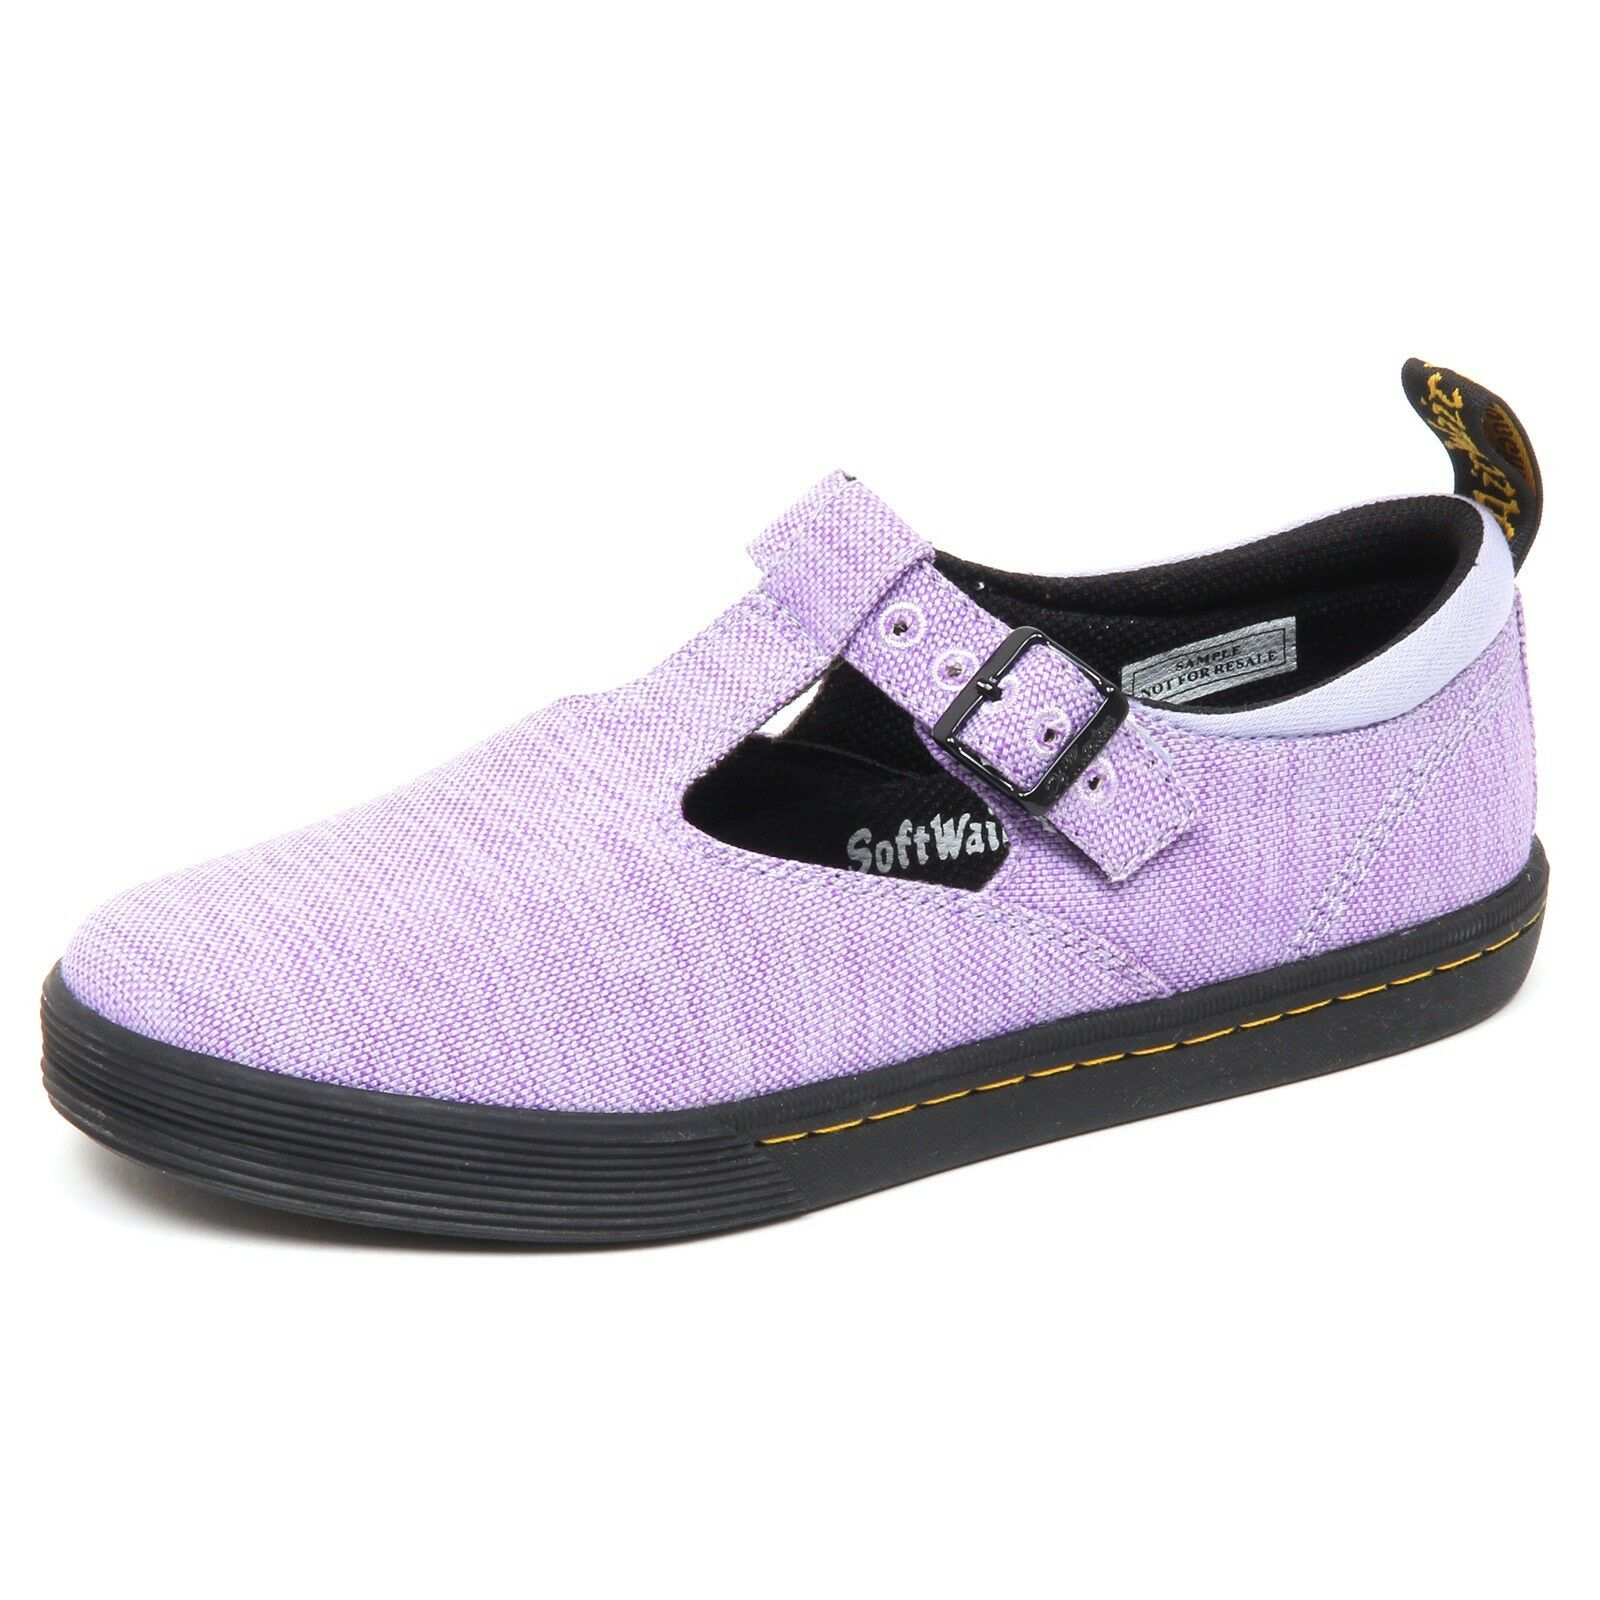 D7916 (SAMPLE NOT FOR SALE WITHOUT BOX) scarpa donna canvas DR. MARTENS shoe w